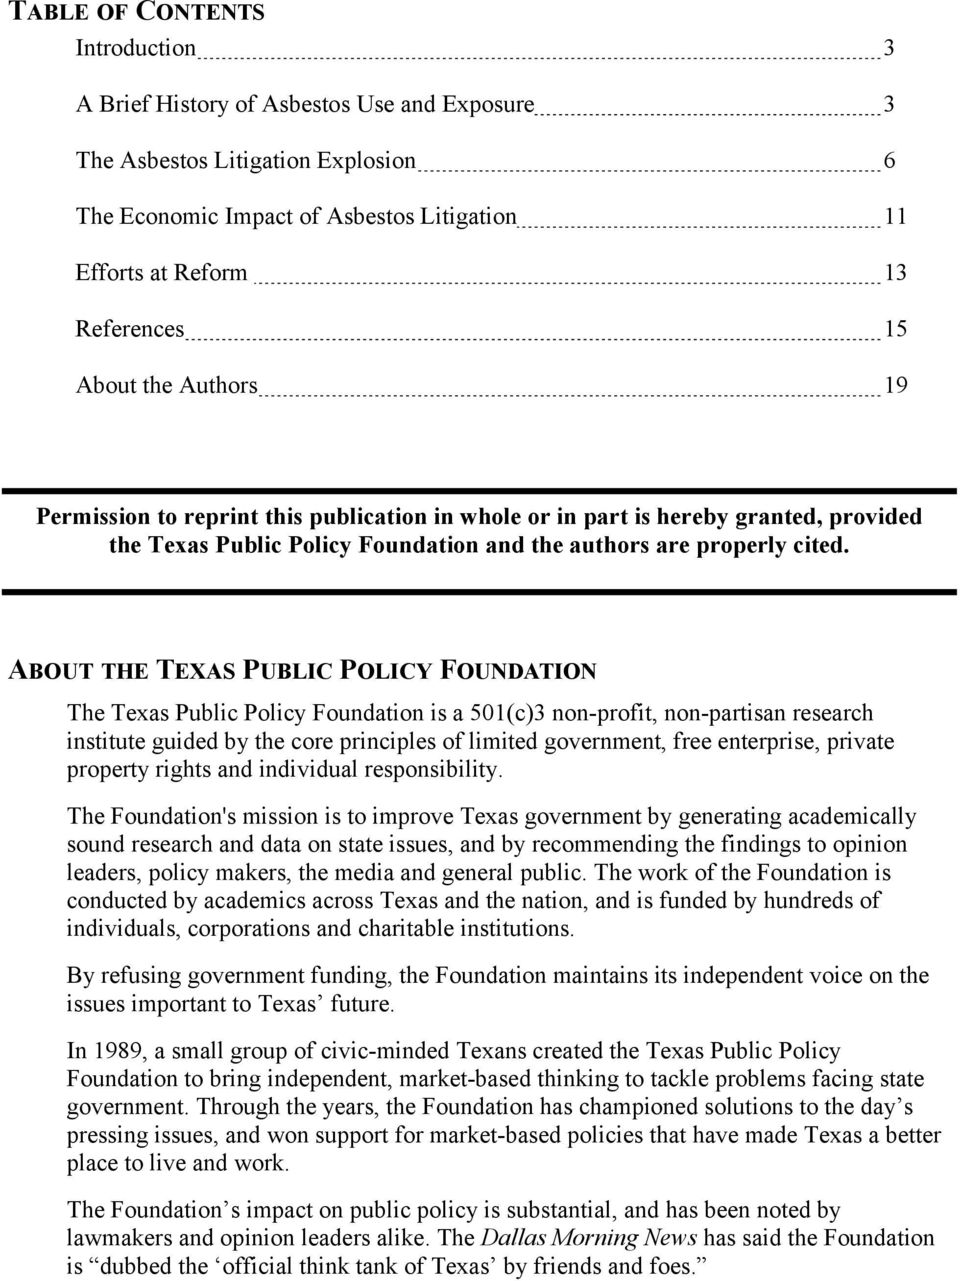 ABOUT THE TEXAS PUBLIC POLICY FOUNDATION The Texas Public Policy Foundation is a 501(c)3 non-profit, non-partisan research institute guided by the core principles of limited government, free